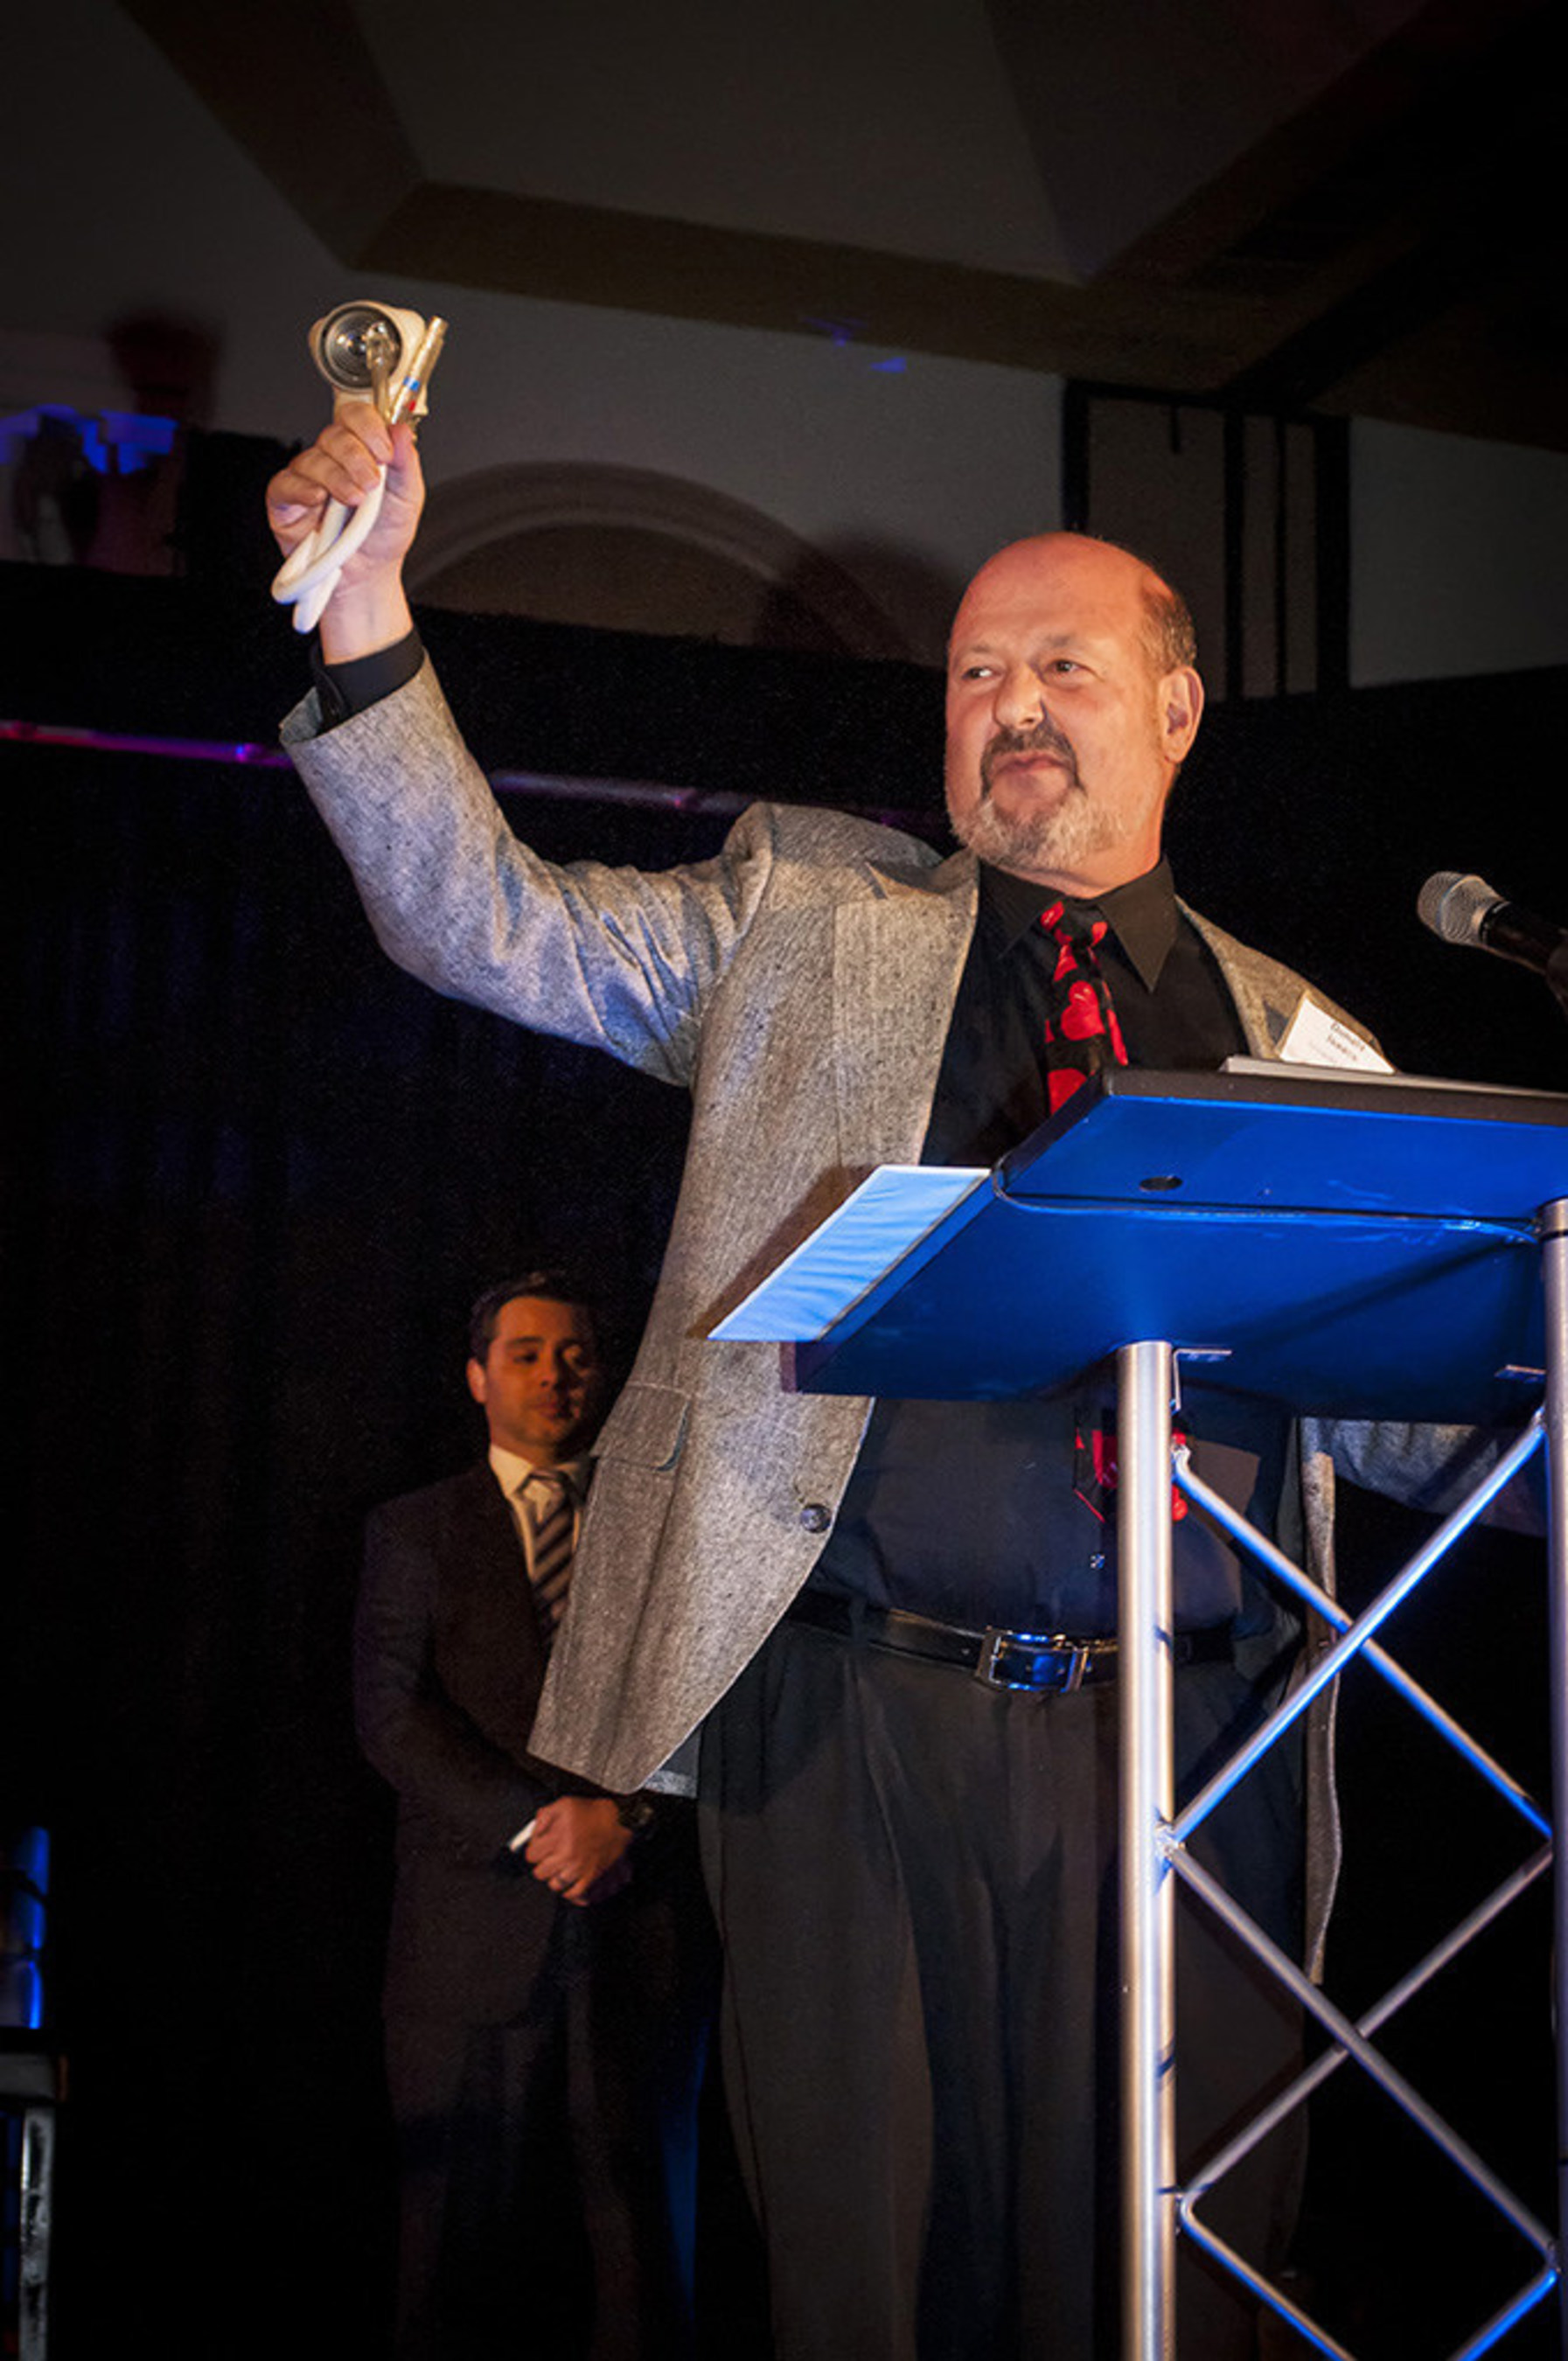 Don Isaacs shows the 2015 HealthCare Leadership Awards audience the 50cc SynCardia Total Artificial Heart that is in a clinical study.